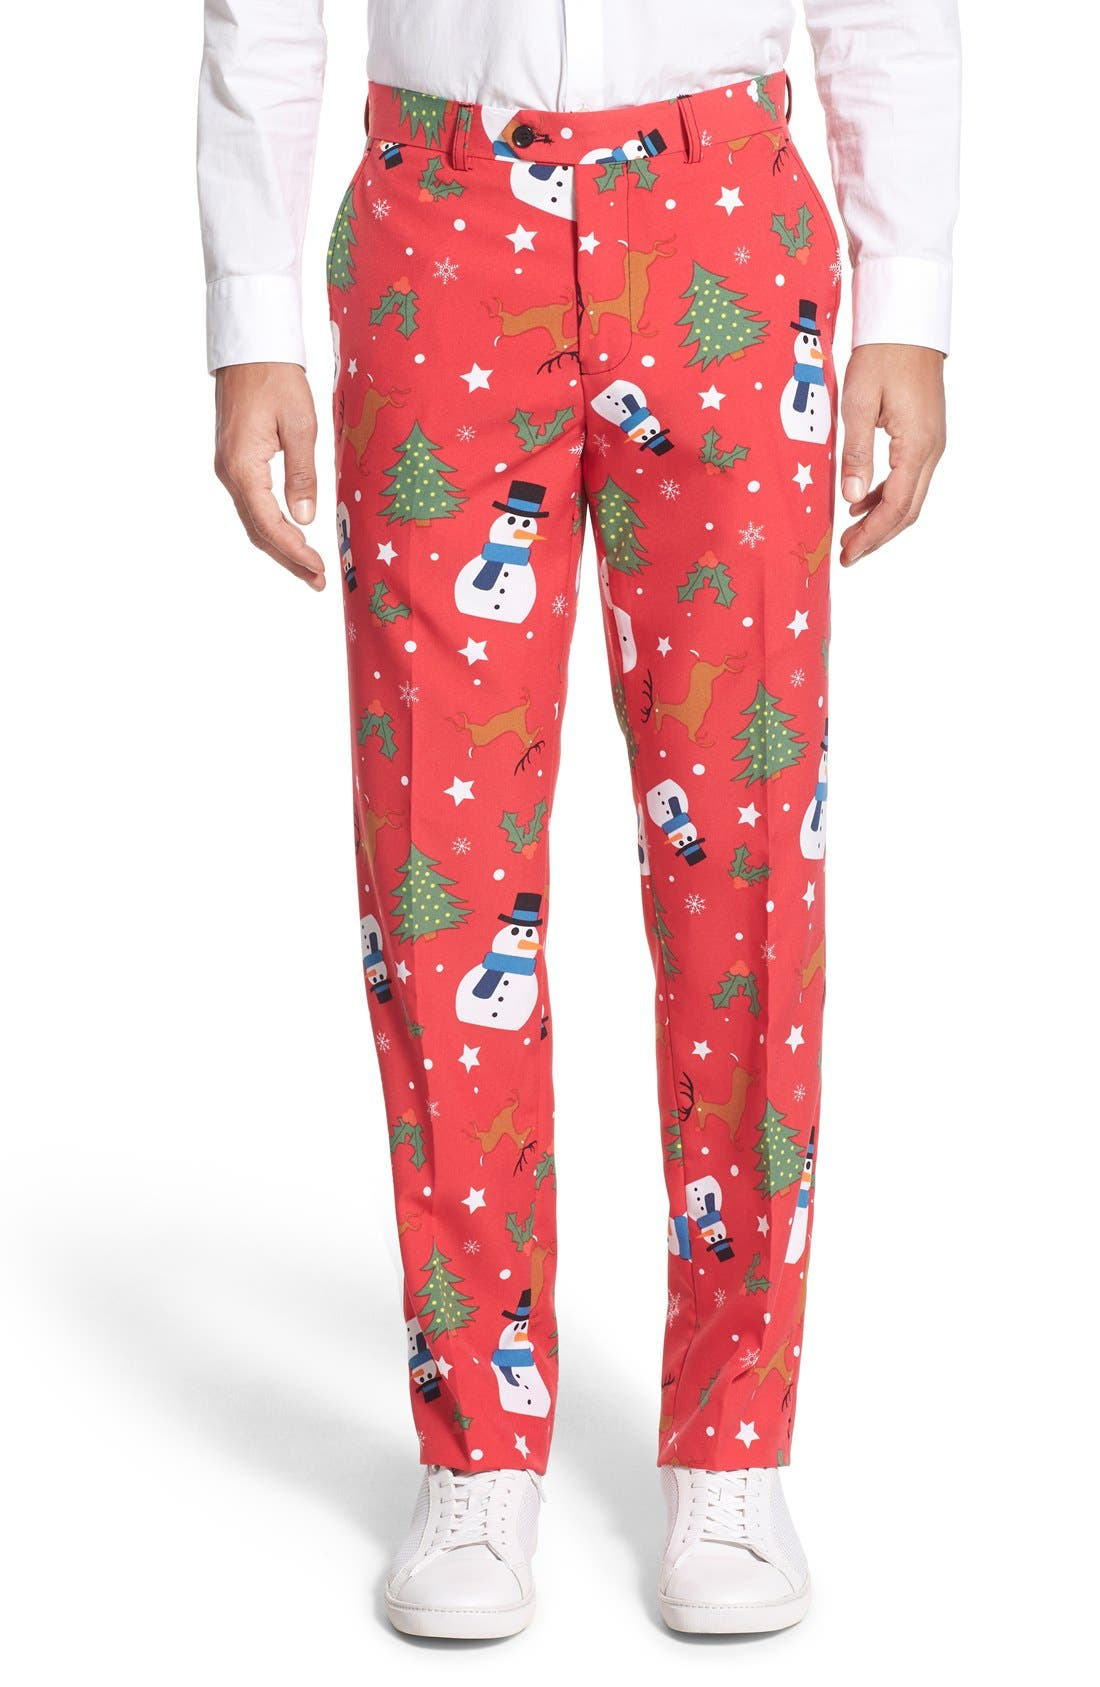 'Christmaster' Holiday Suit & Tie,                             Alternate thumbnail 4, color,                             600